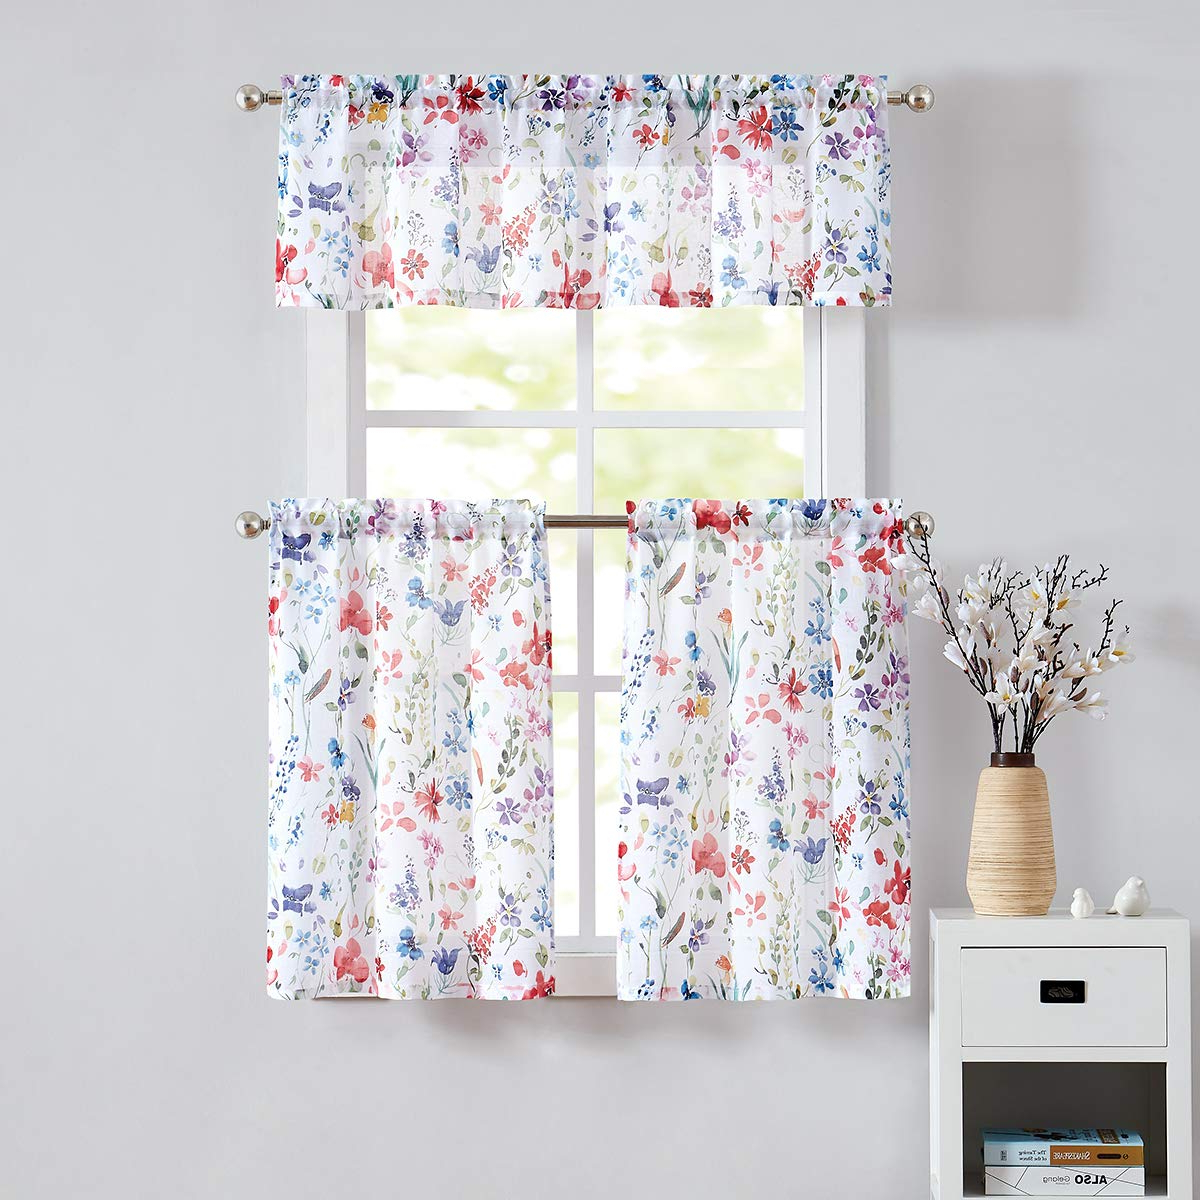 "Fragrantex Floral Print Kitchen Curtains 24"" Multi Color Sheer Tier Curtain  Set For Windows Linen Cotton Like Curtain Panels For Laundry Room Tiers With Regard To Well Liked Floral Watercolor Semi Sheer Rod Pocket Kitchen Curtain Valance And Tiers Sets (Gallery 1 of 20)"